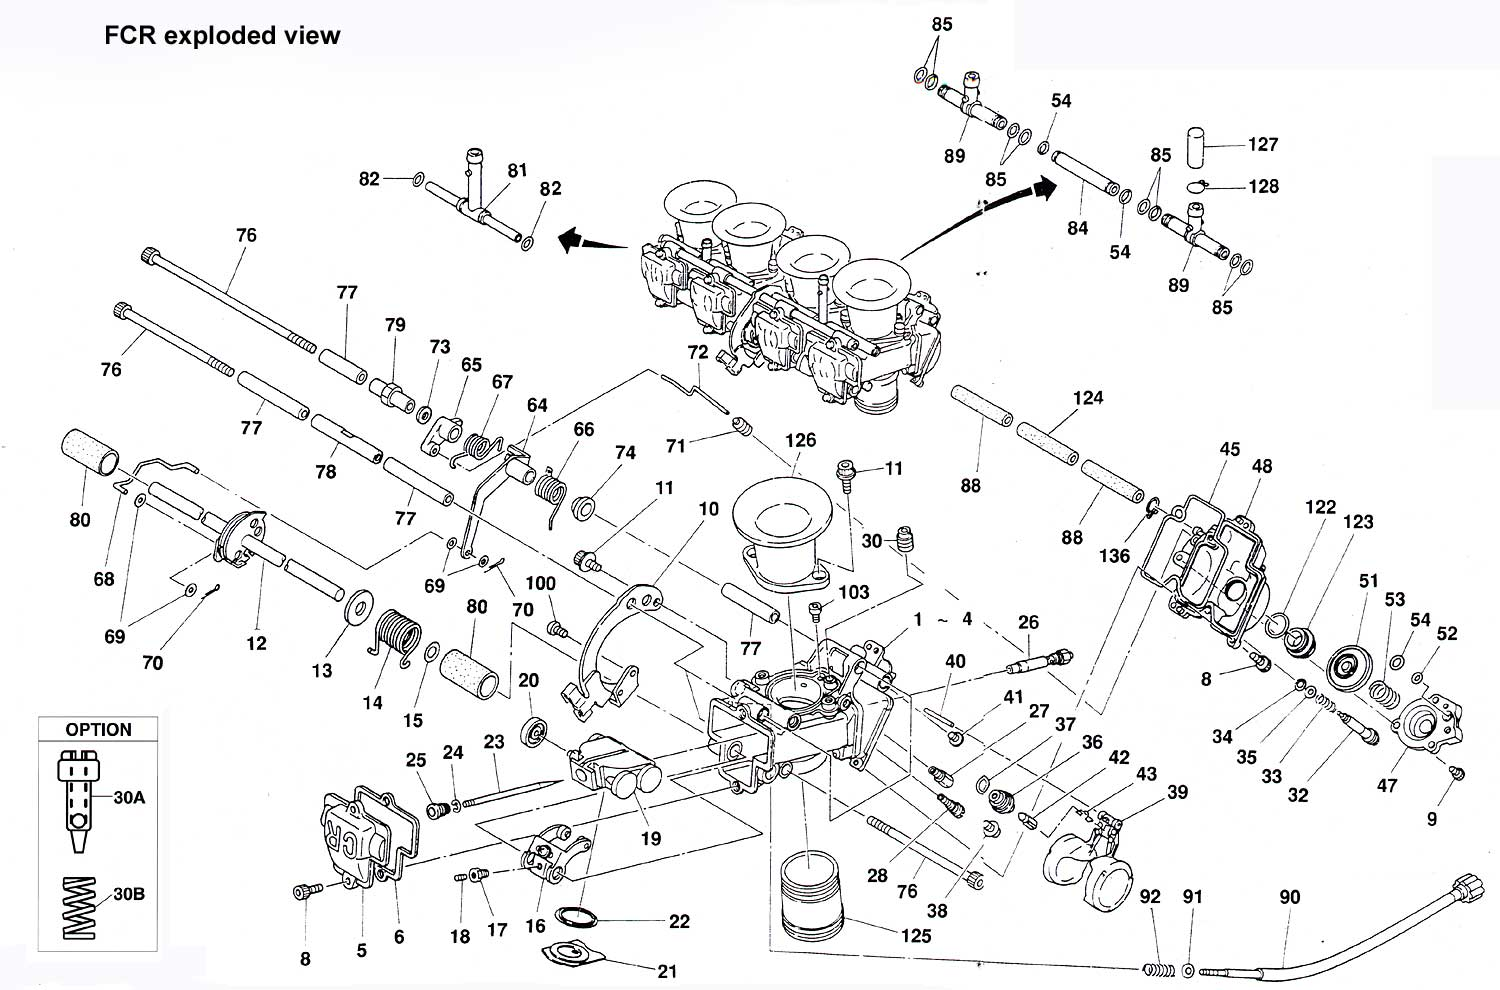 Hilti Dsh 700 Parts Diagram Engine Wiring Diagram Images